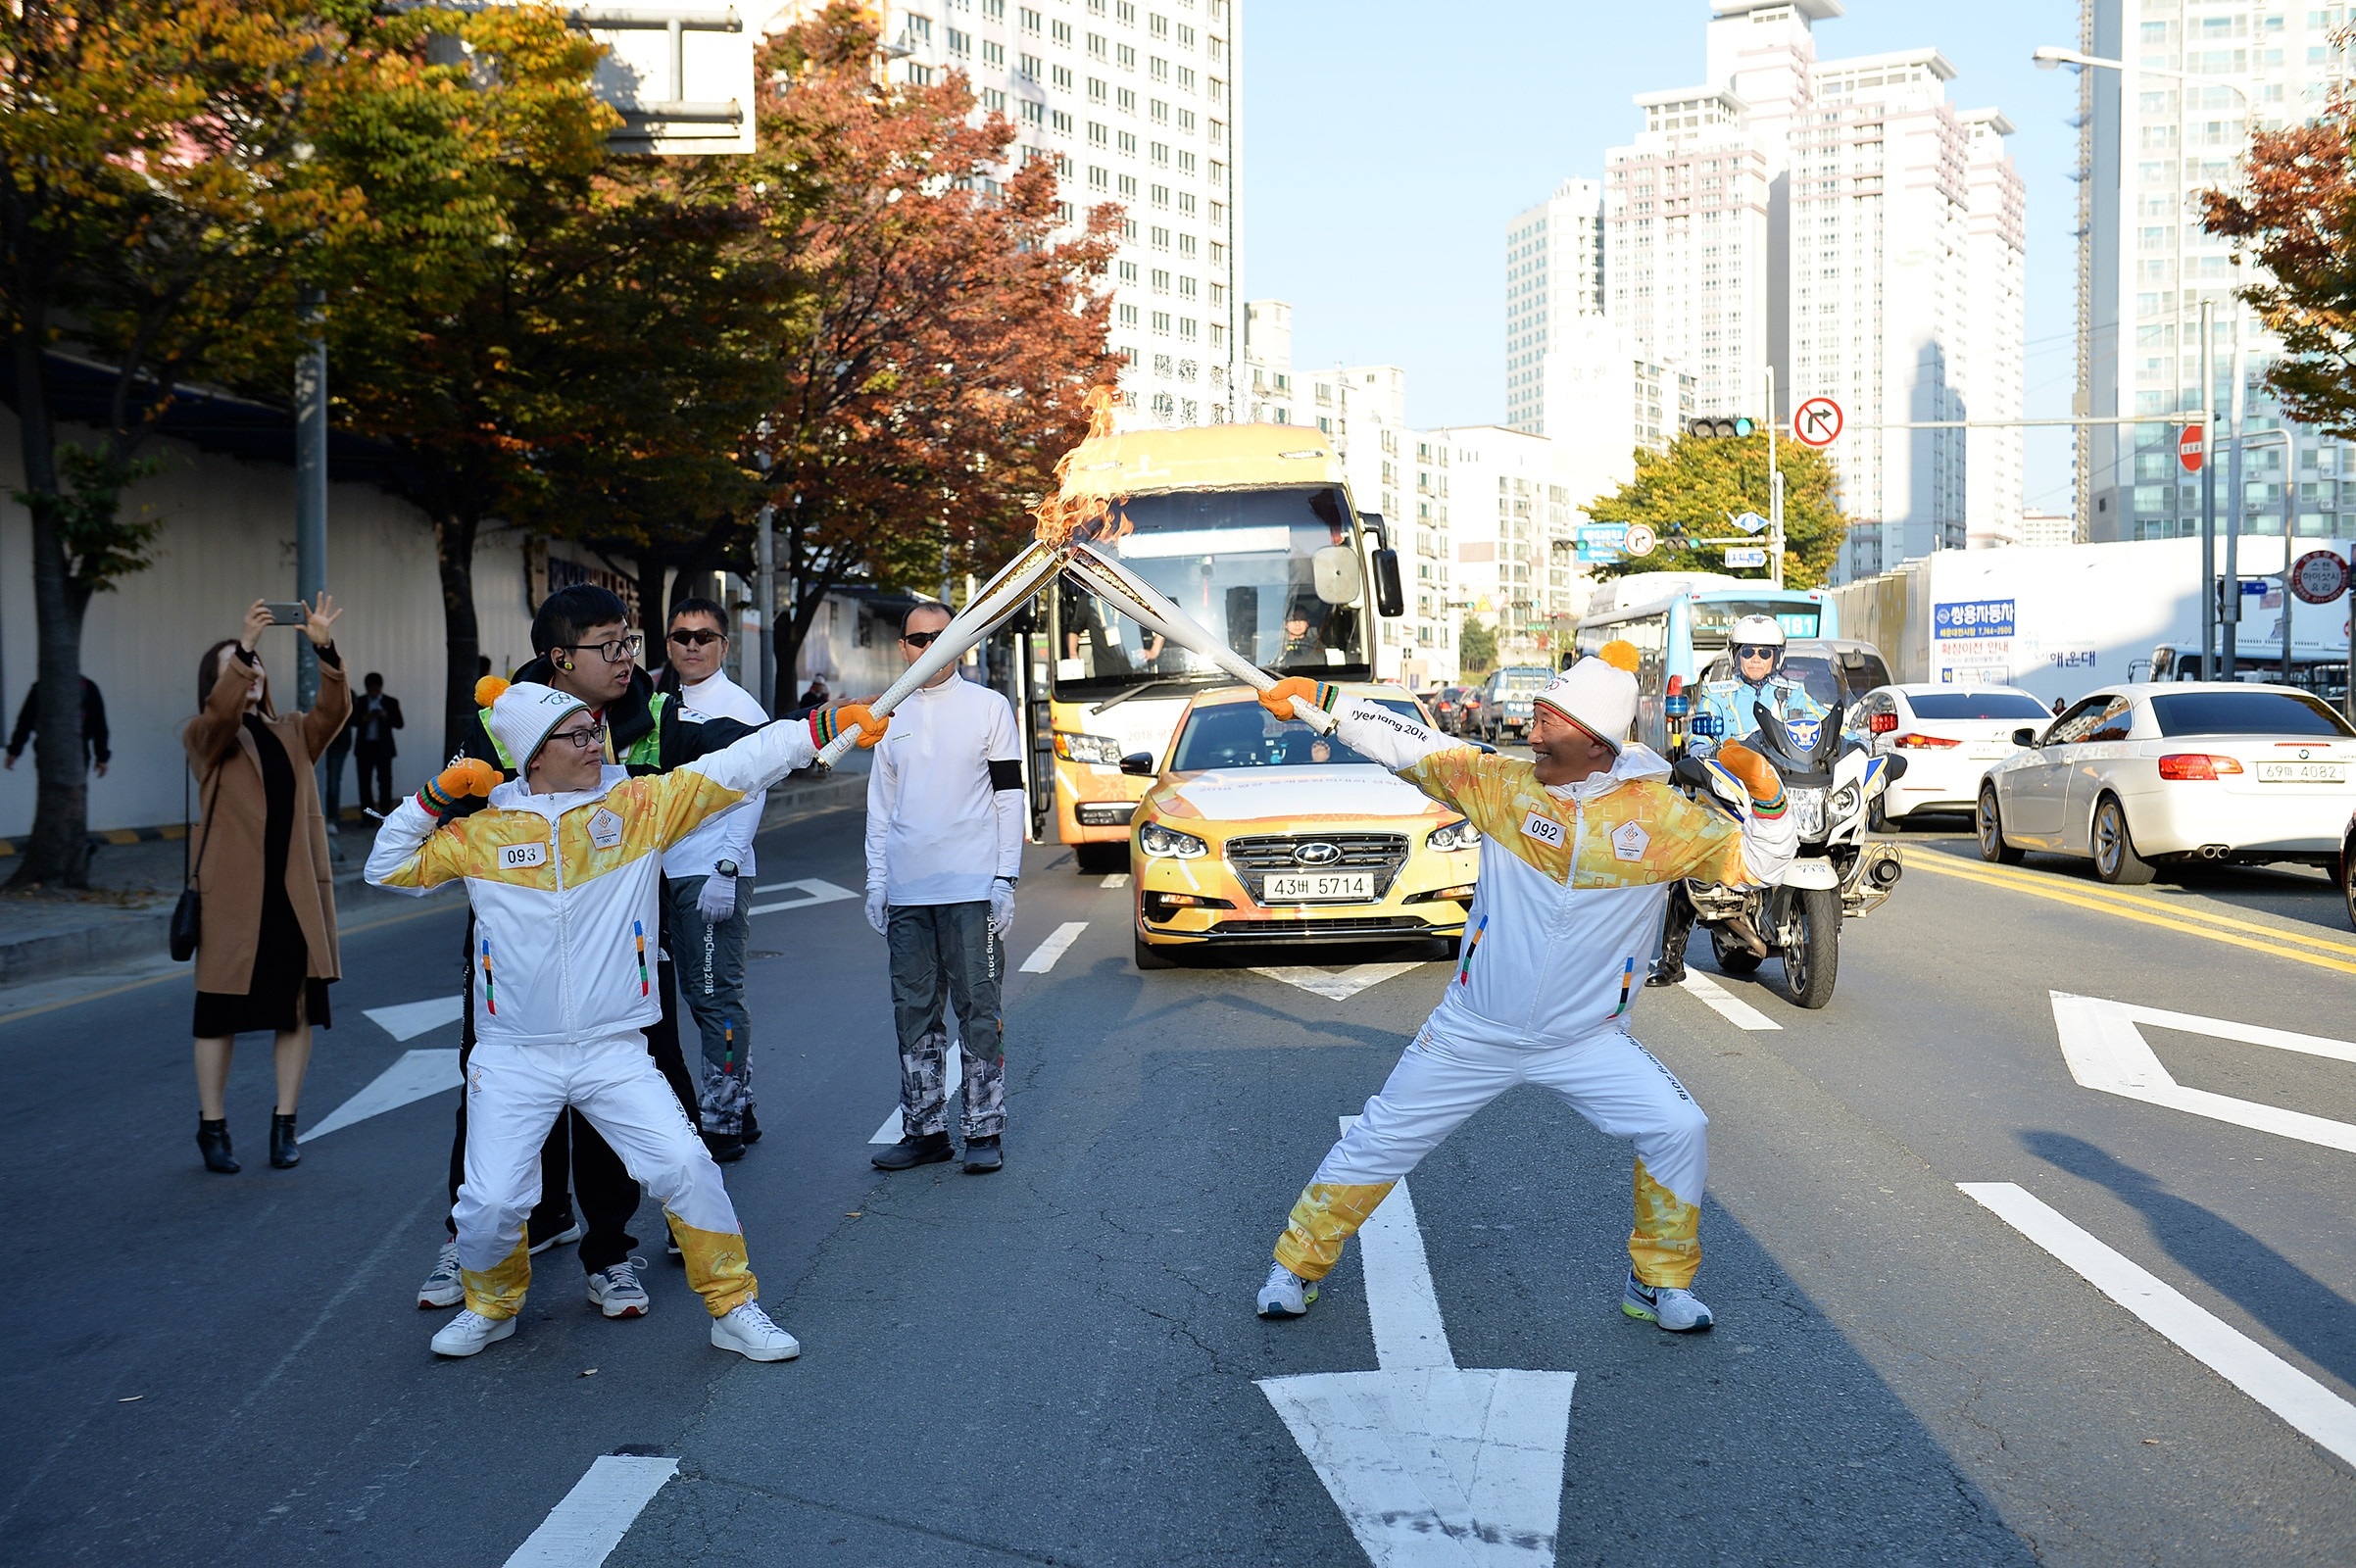 PyeongChang 2018 Olympic Torch Relay - Day 6